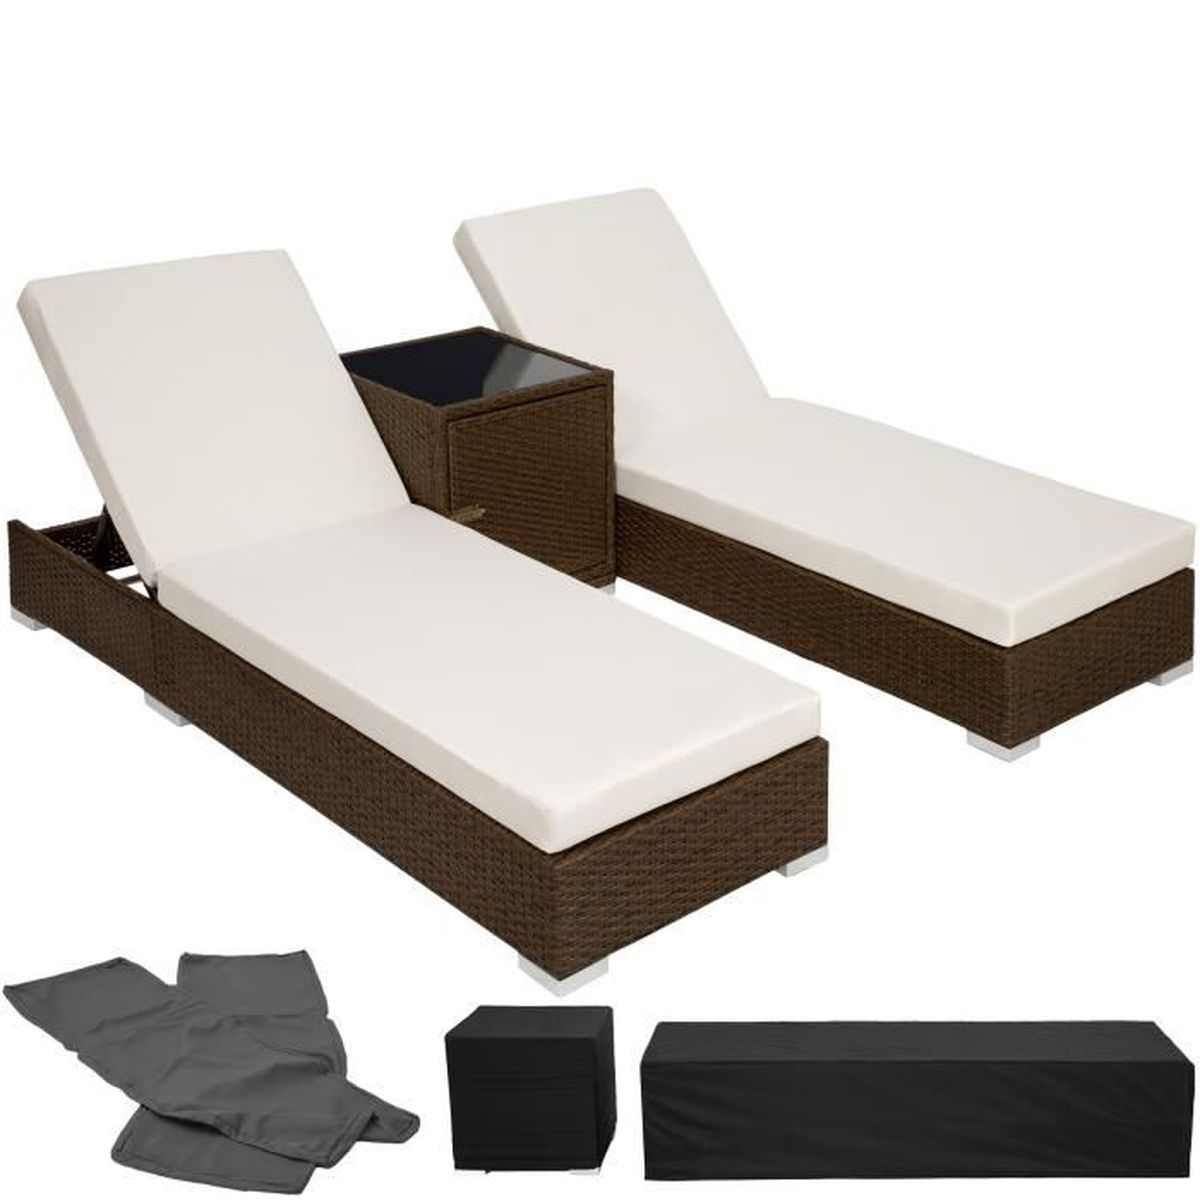 chaise longue rotin achat vente chaise longue rotin. Black Bedroom Furniture Sets. Home Design Ideas